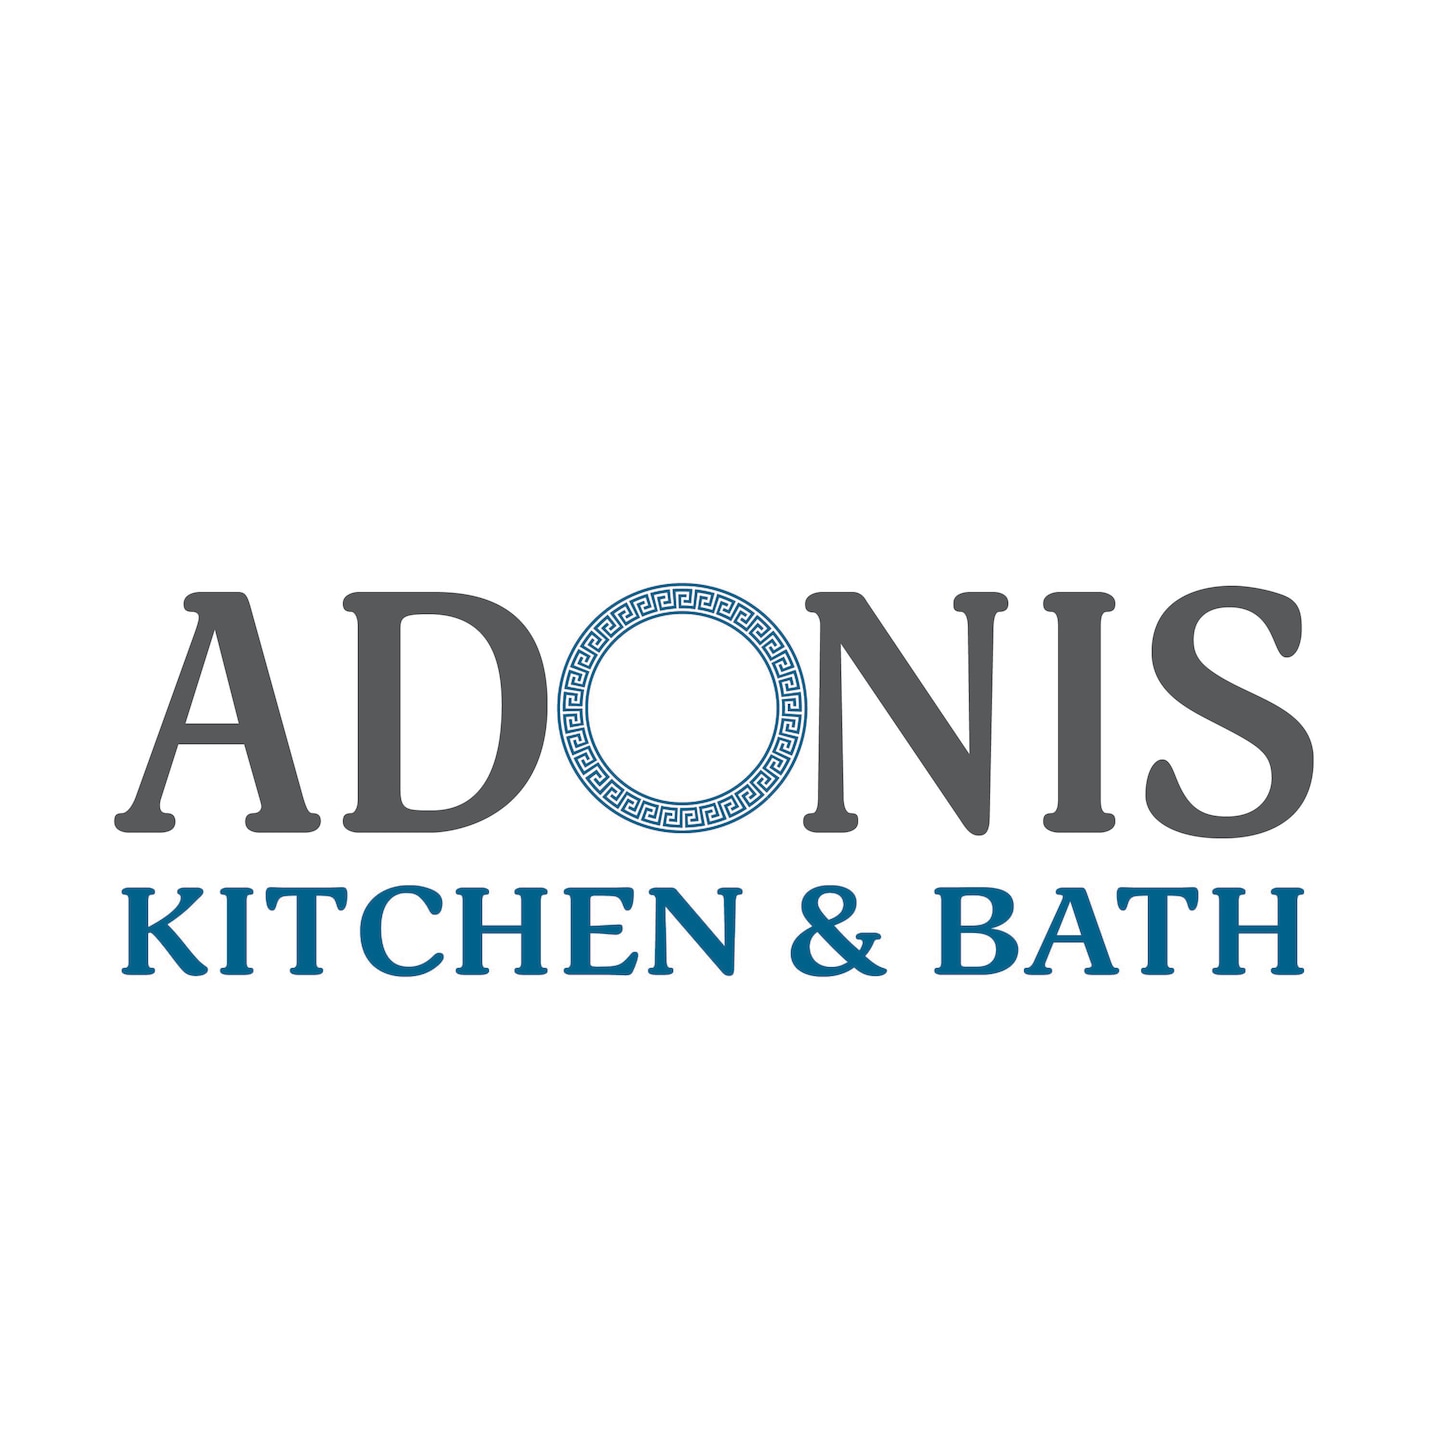 Adonis Kitchen & Bath LLC